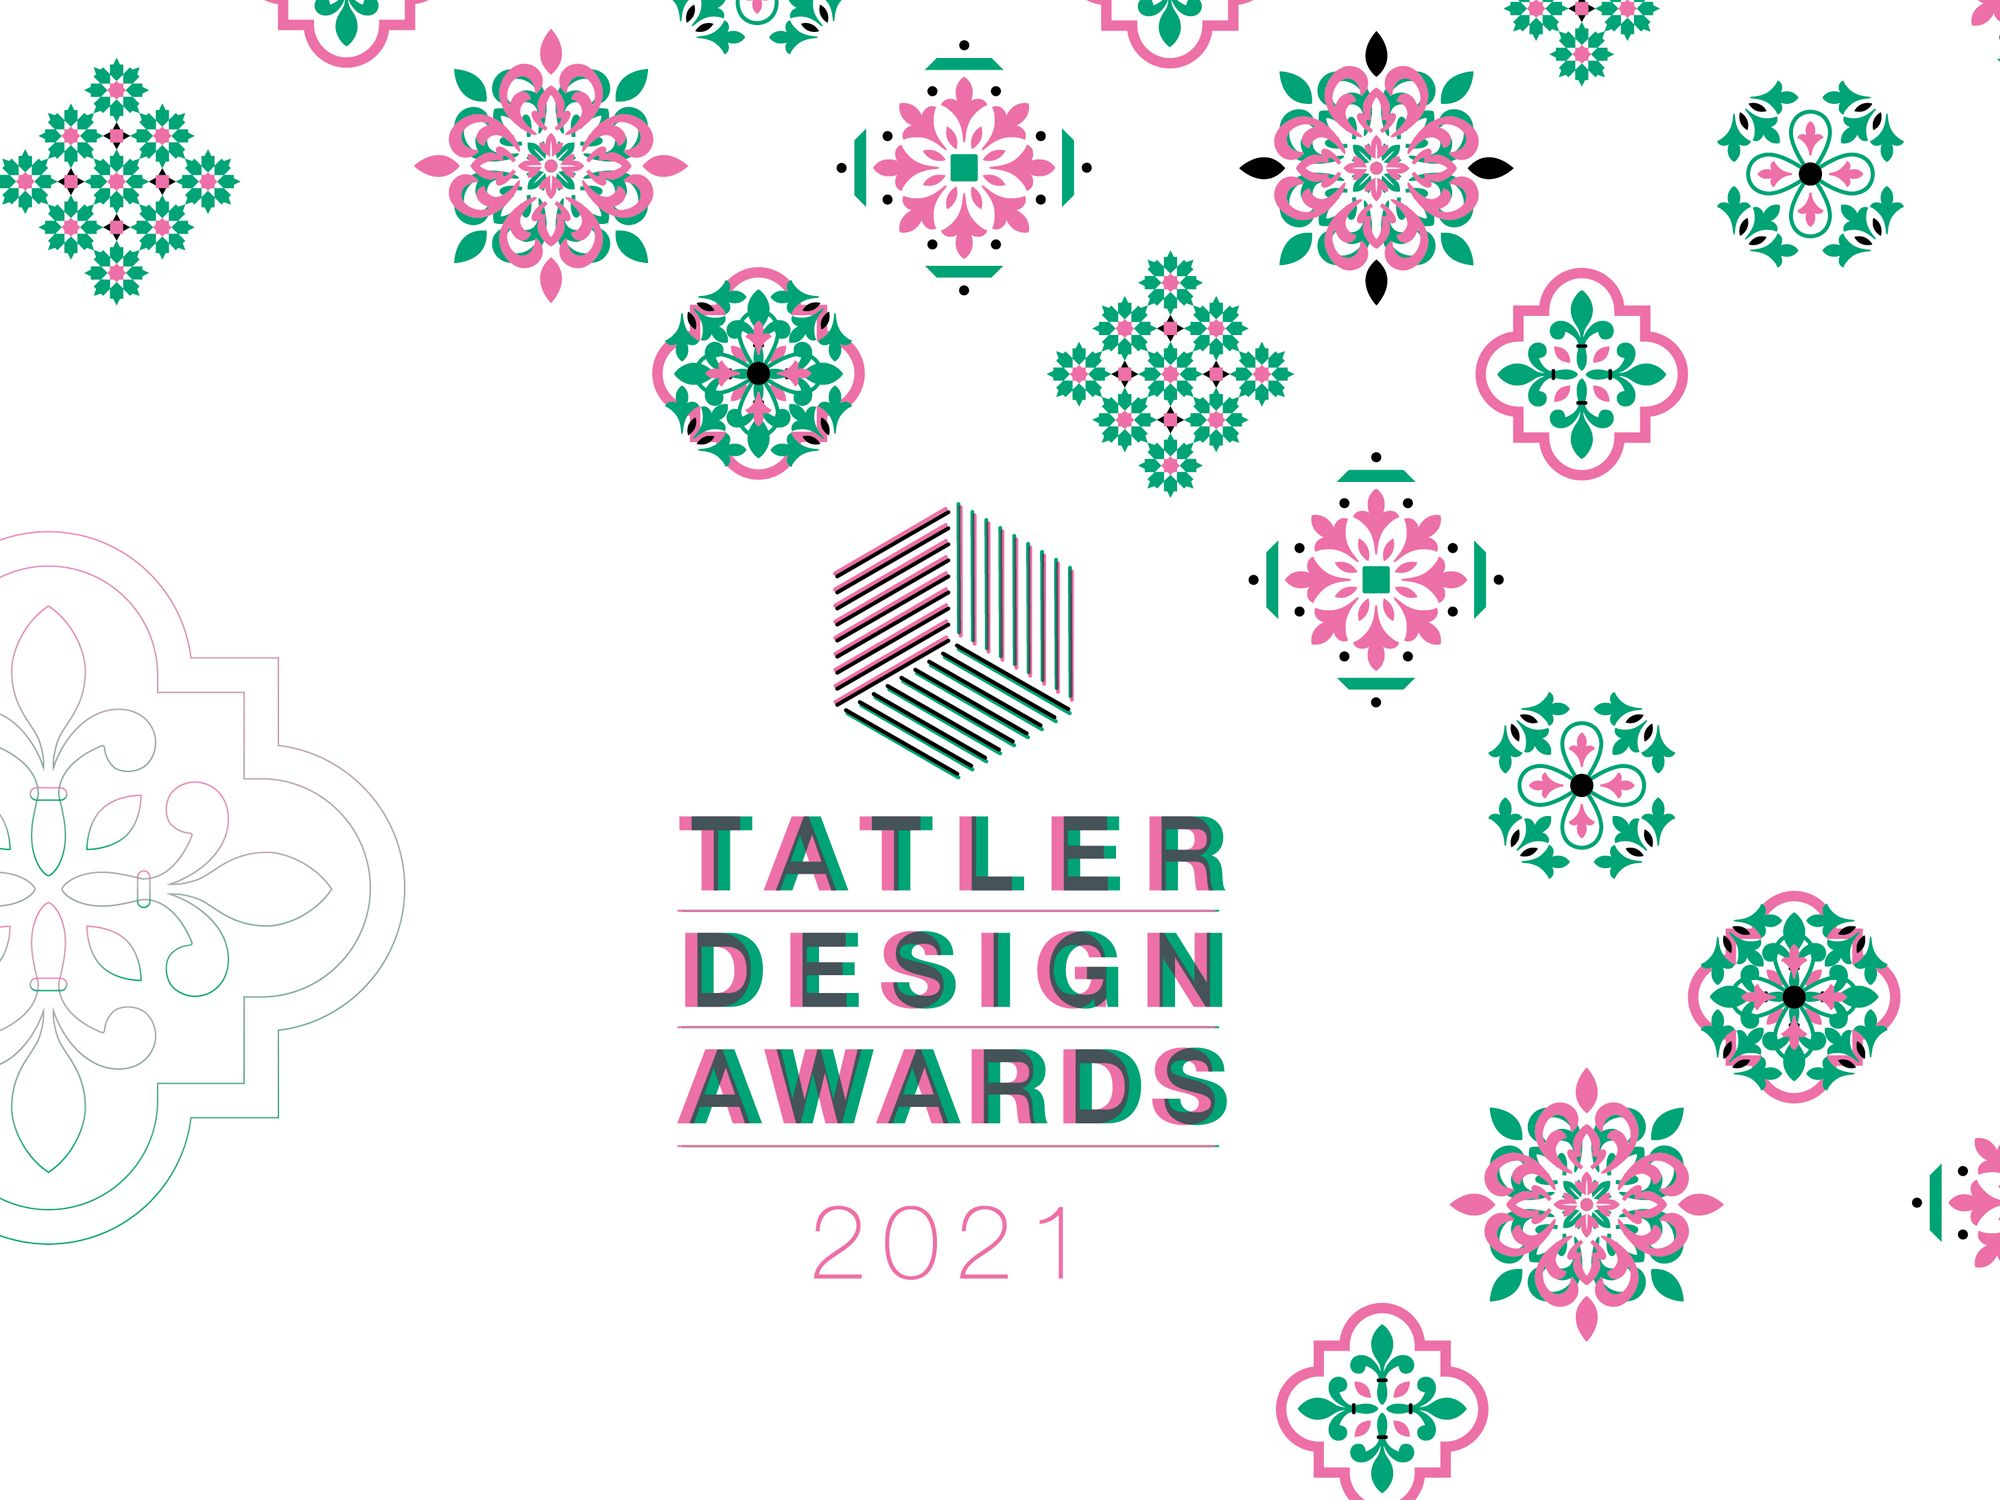 Tatler Design Awards 2021